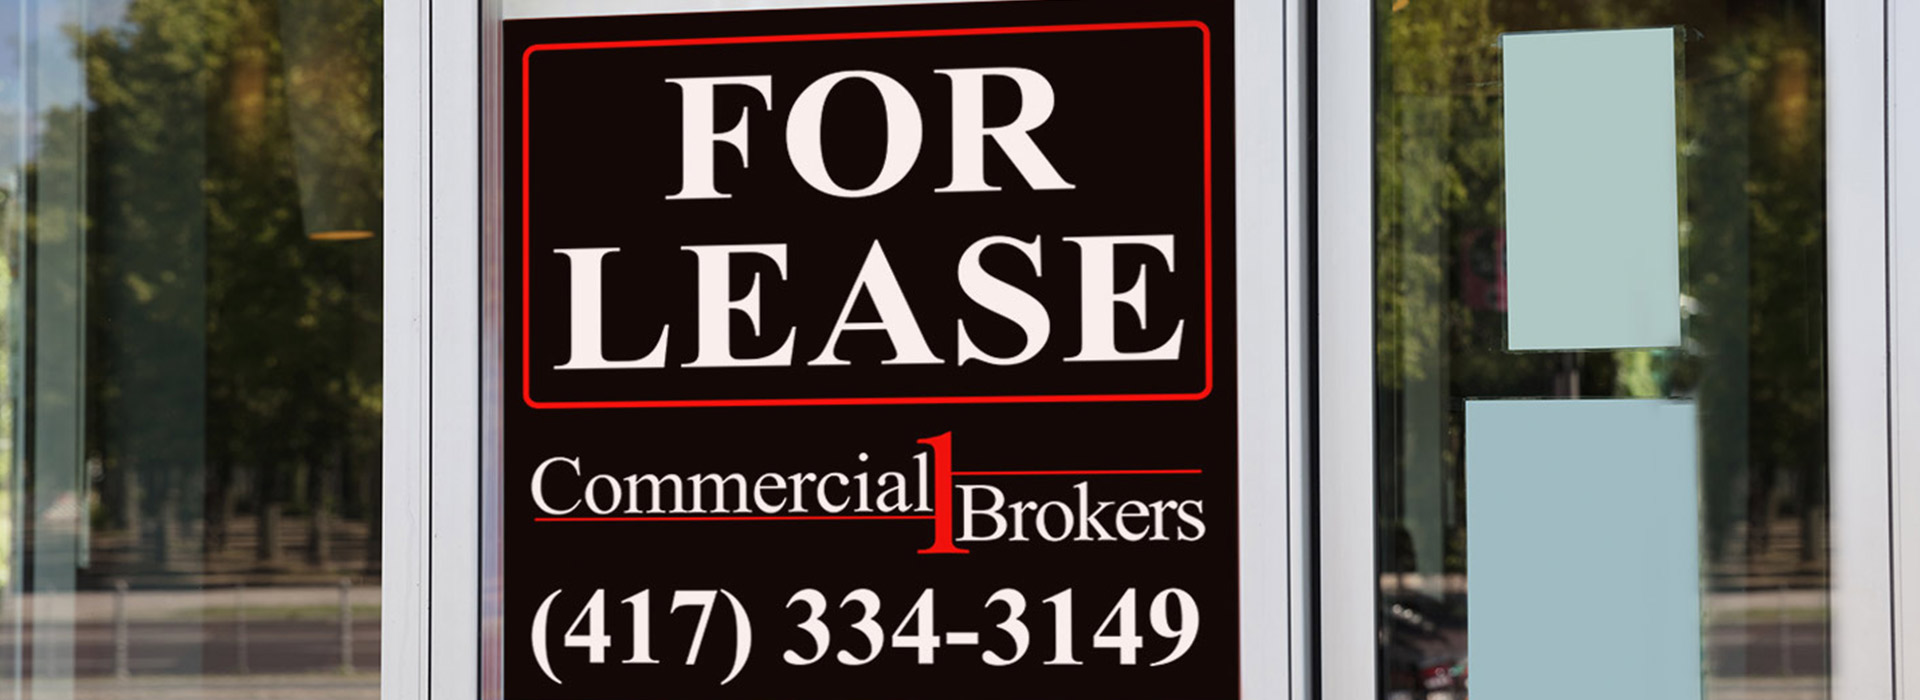 For lease sign on a commercial real estate building in Branson, MO.